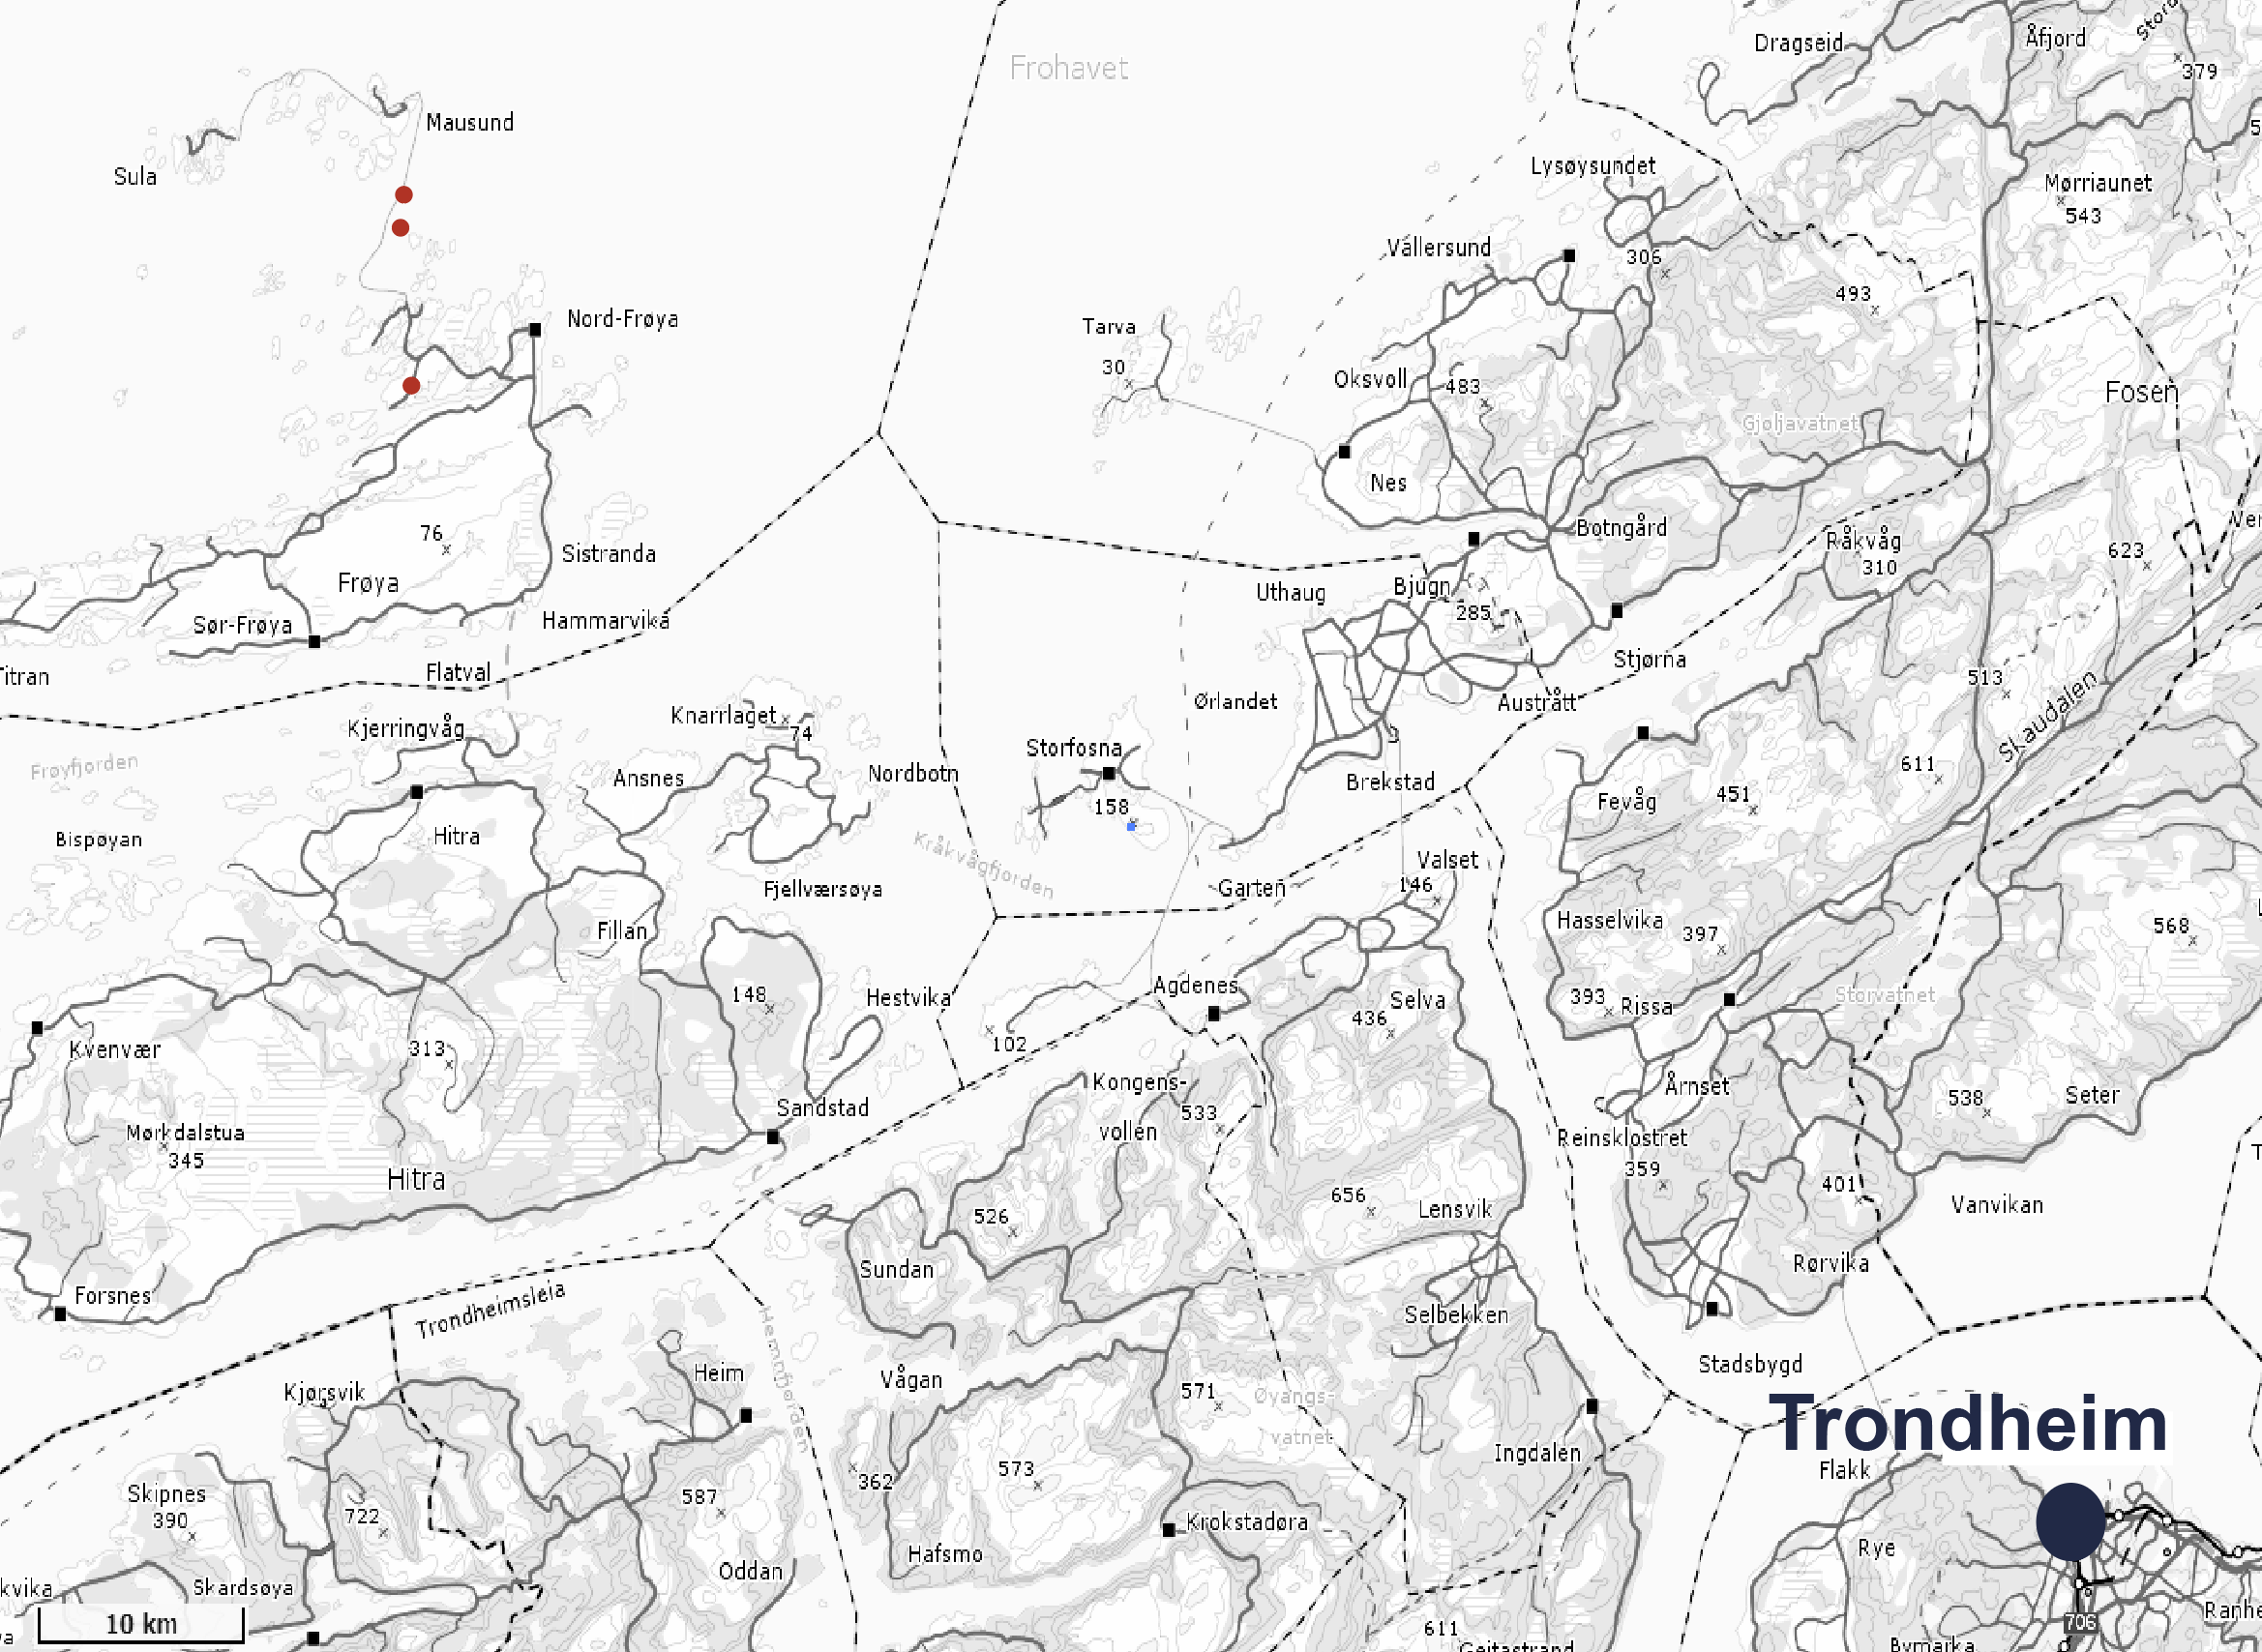 Map of locations of norcod cod farms in Trondheim, Norway